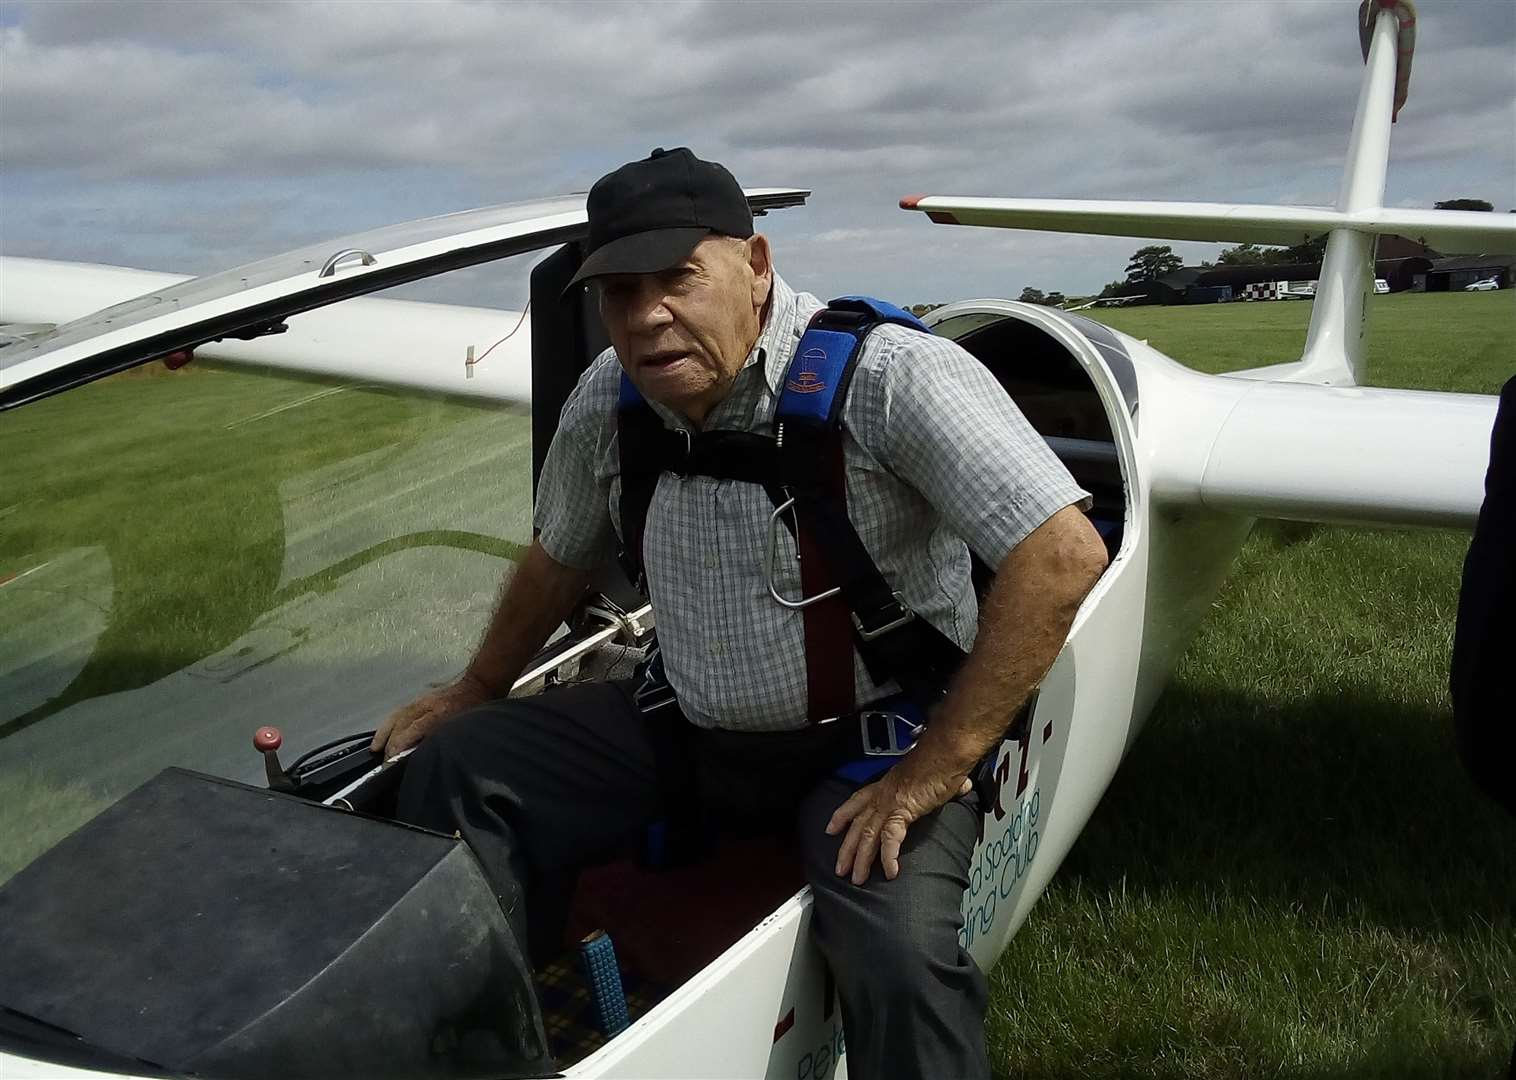 Nev climbing out of the glider after an enjoyable flight to celebrate his 90th birthday